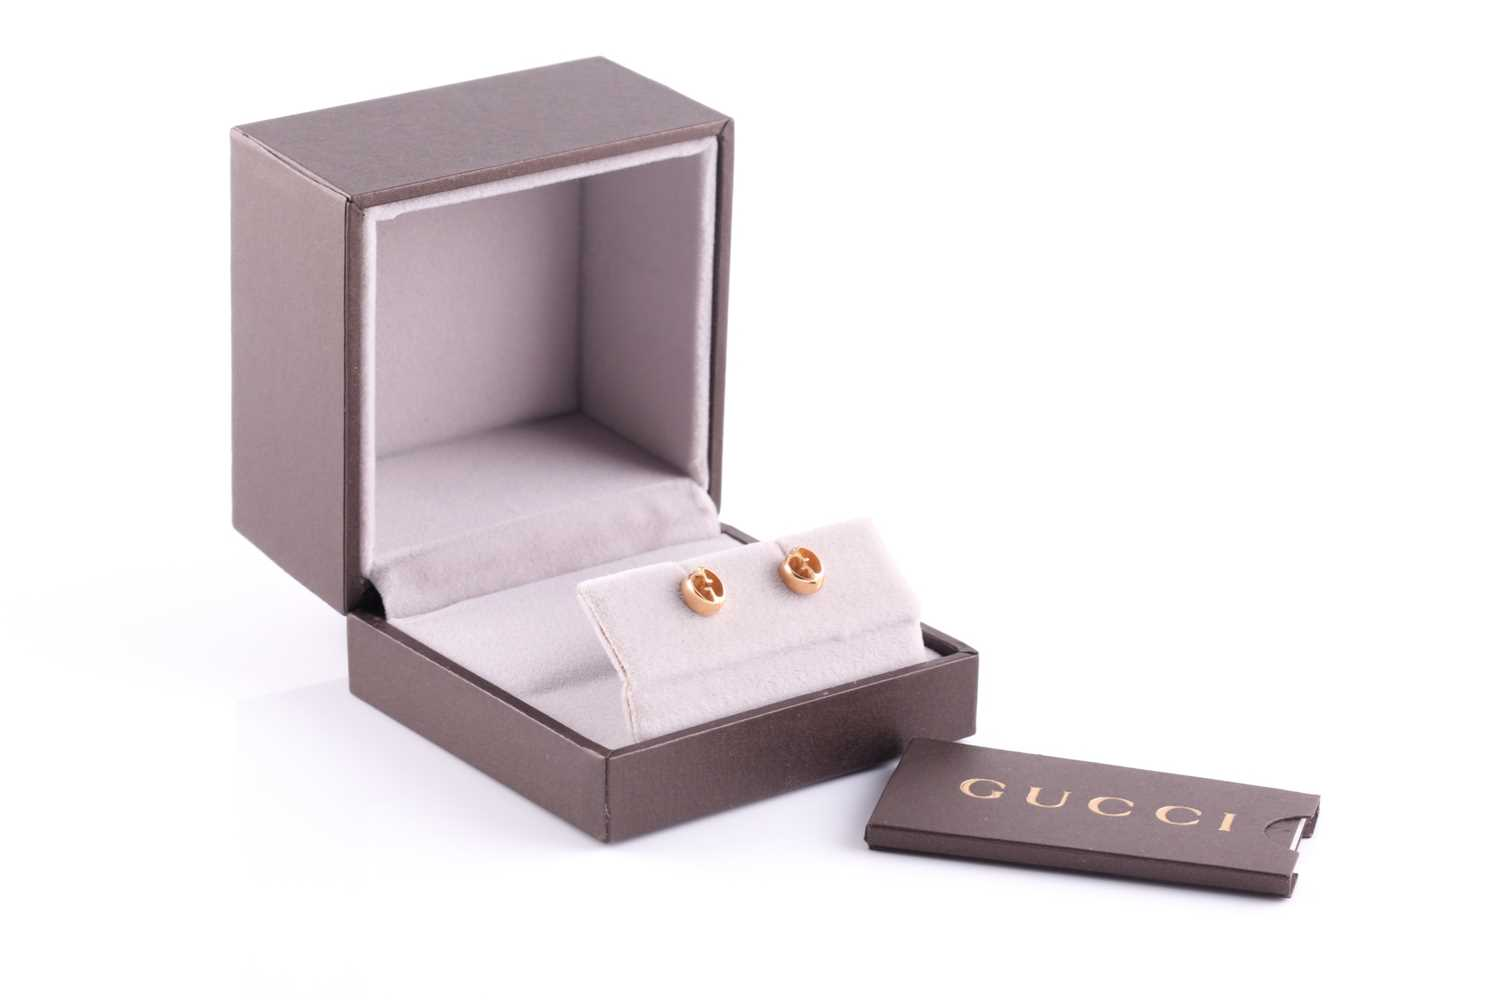 Gucci. A pair of 18ct yellow gold stud earrings of double G design, in original box and outer box.